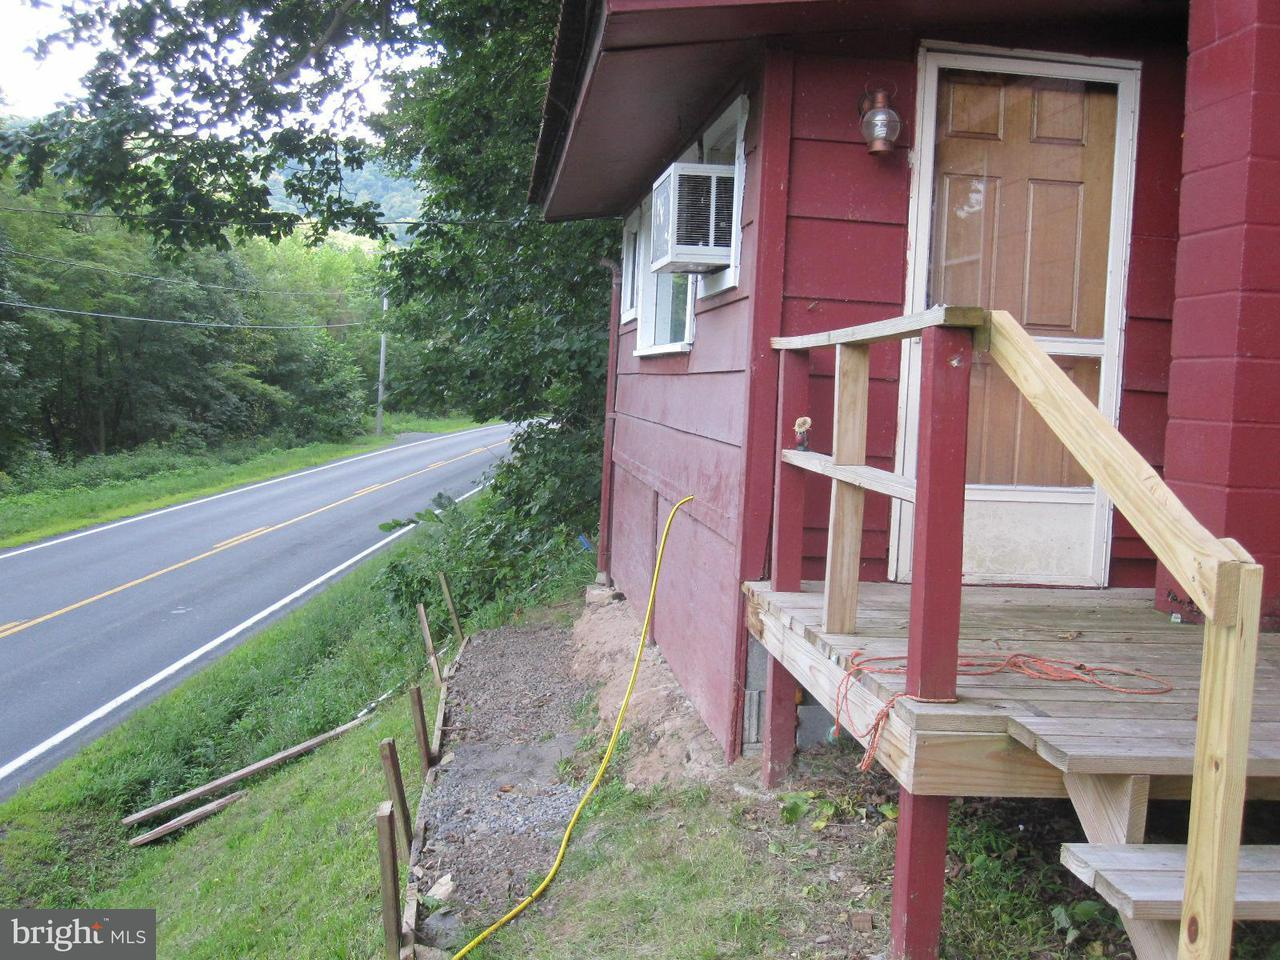 Additional photo for property listing at 9194 North Fork Hwy  Cabins, West Virginia 26855 United States